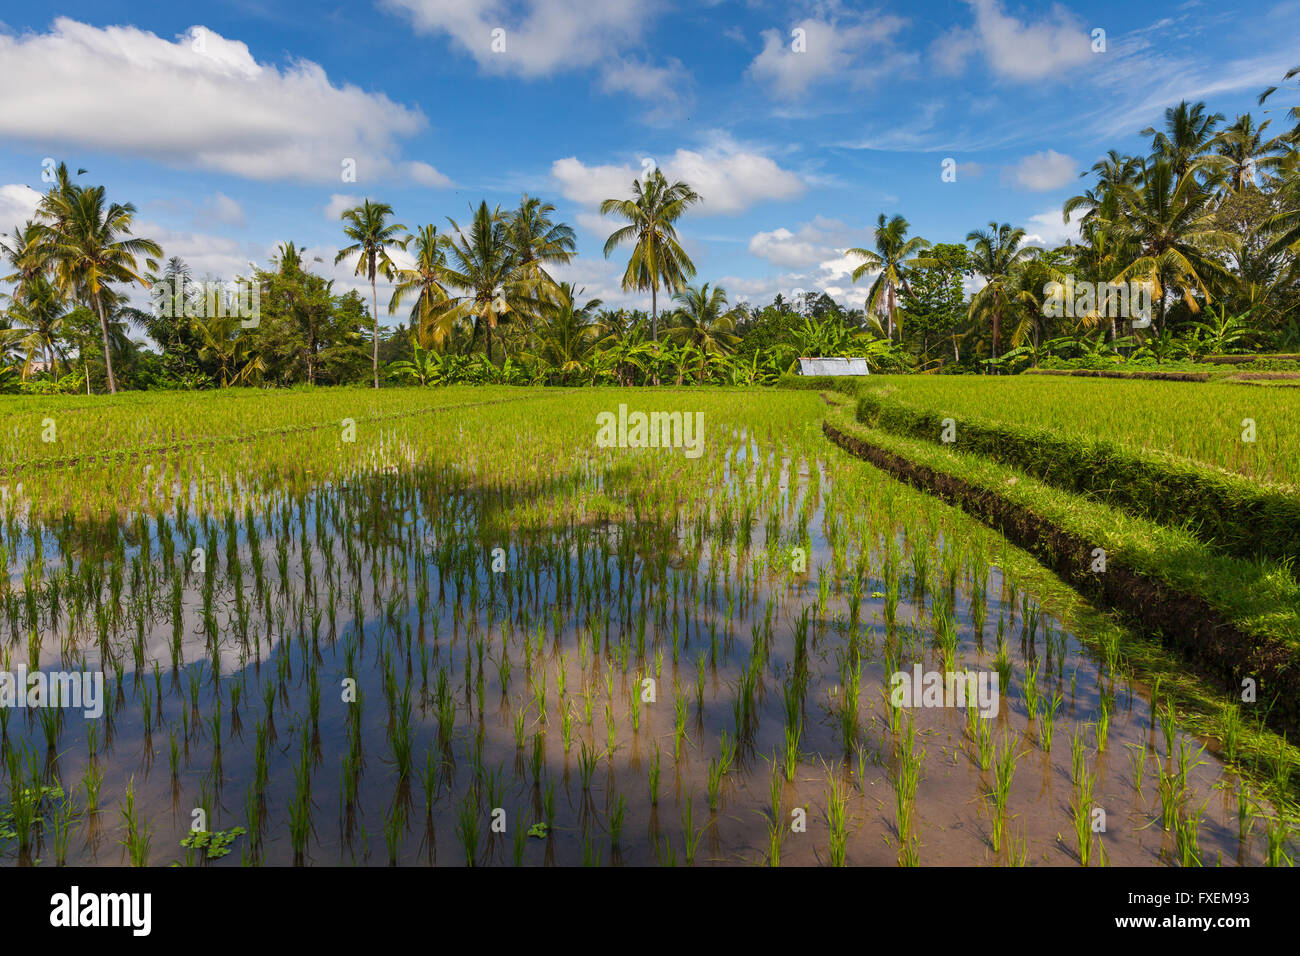 Daytime scenery of the rice fields in Ubud, Bali, Indonesia. - Stock Image